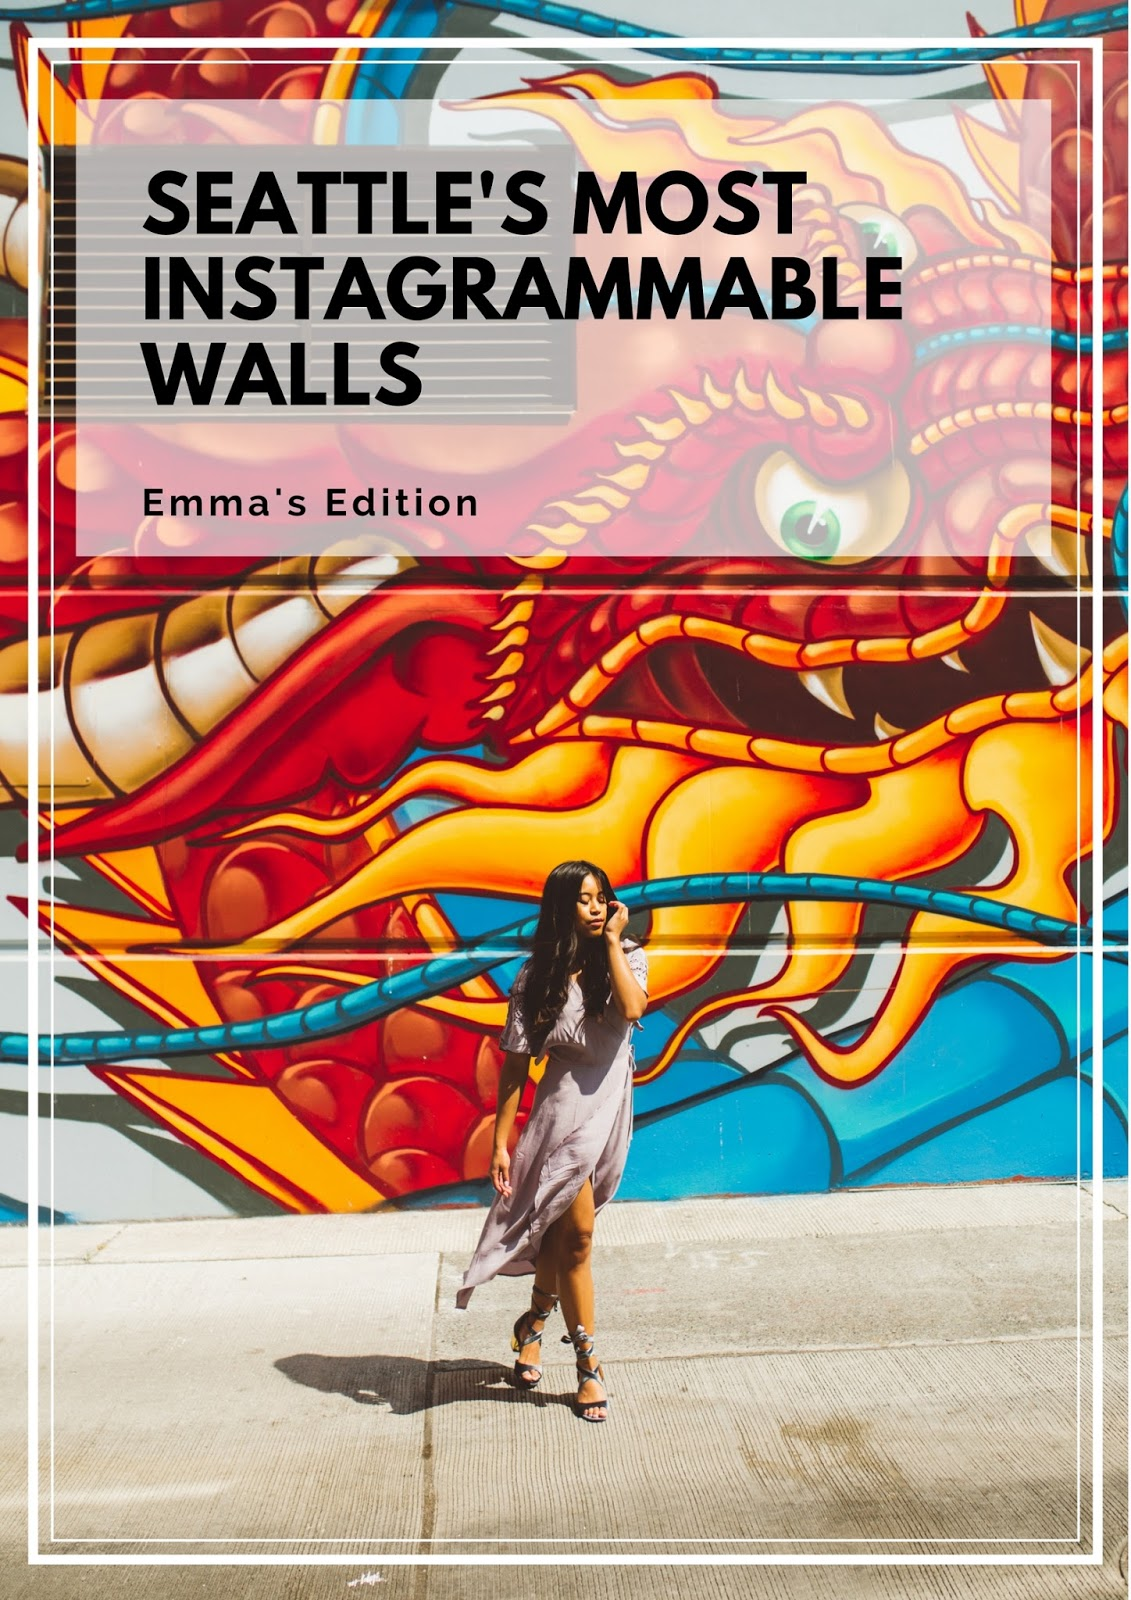 Seattle's Most Instagrammable Walls - Emma's Edition